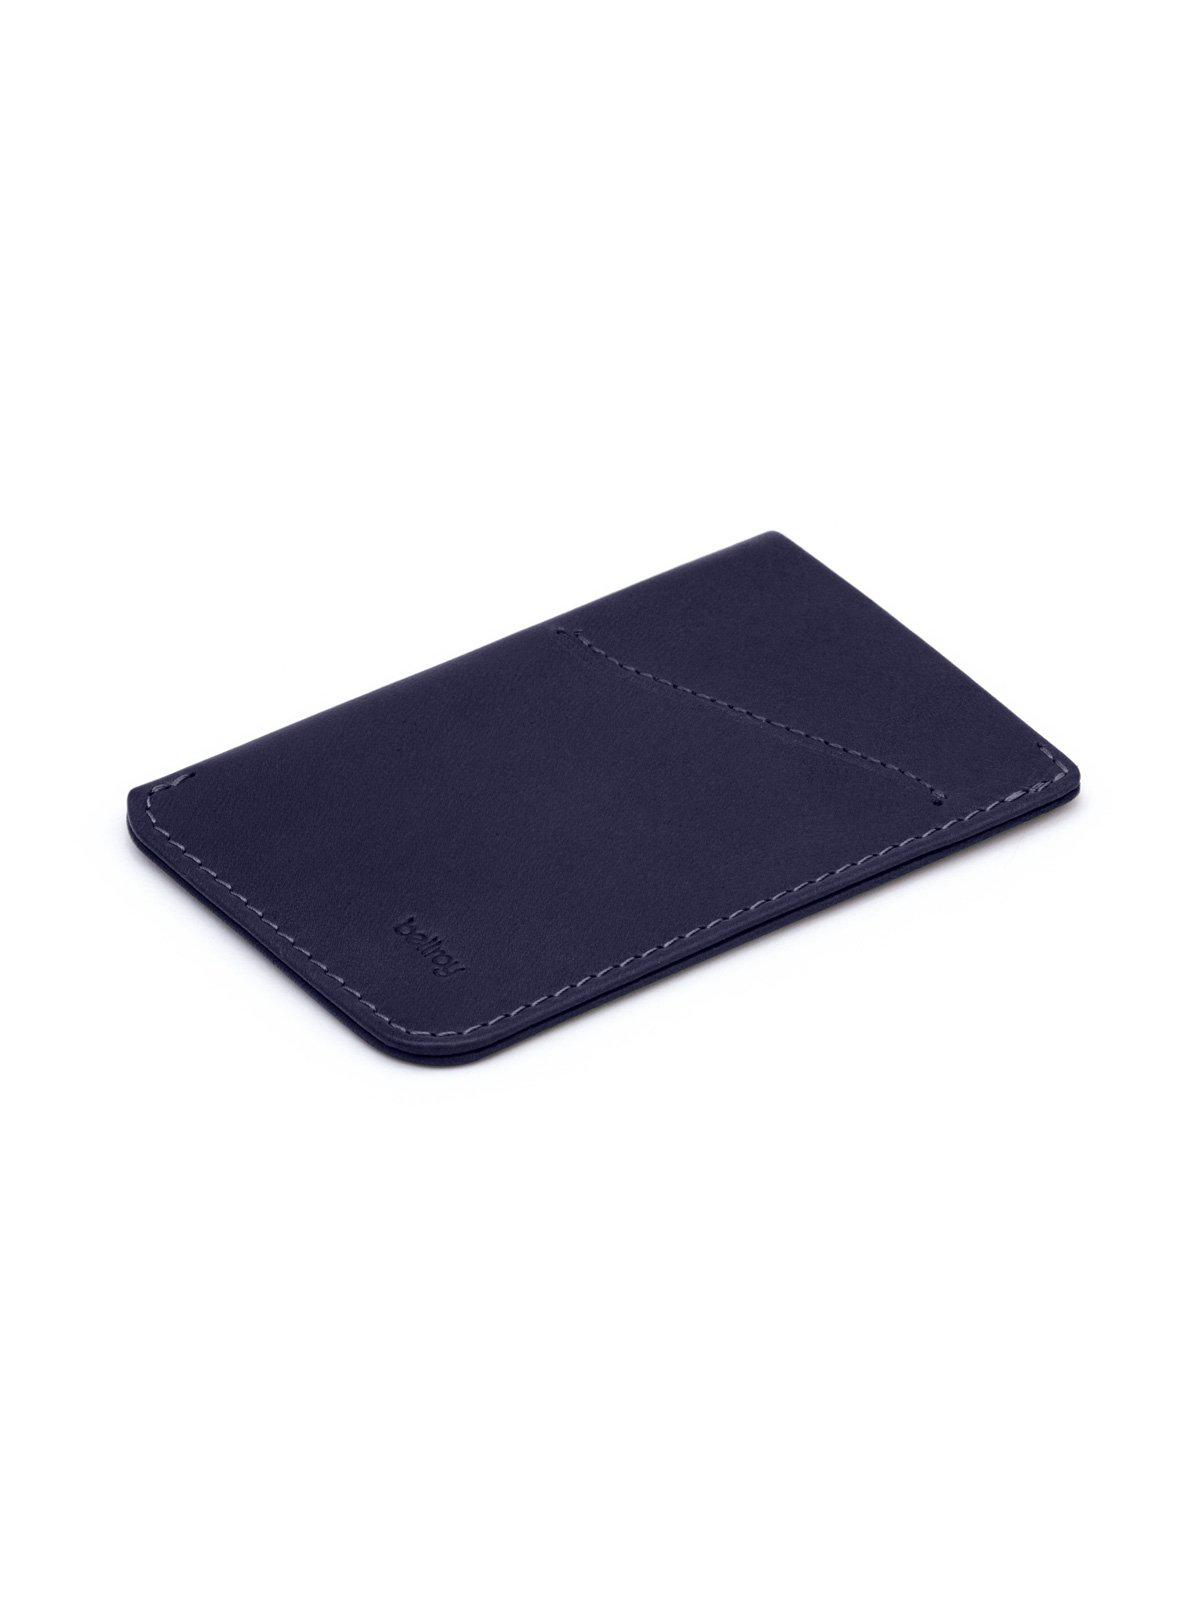 Bellroy Card Sleeve Navy - MORE by Morello Indonesia